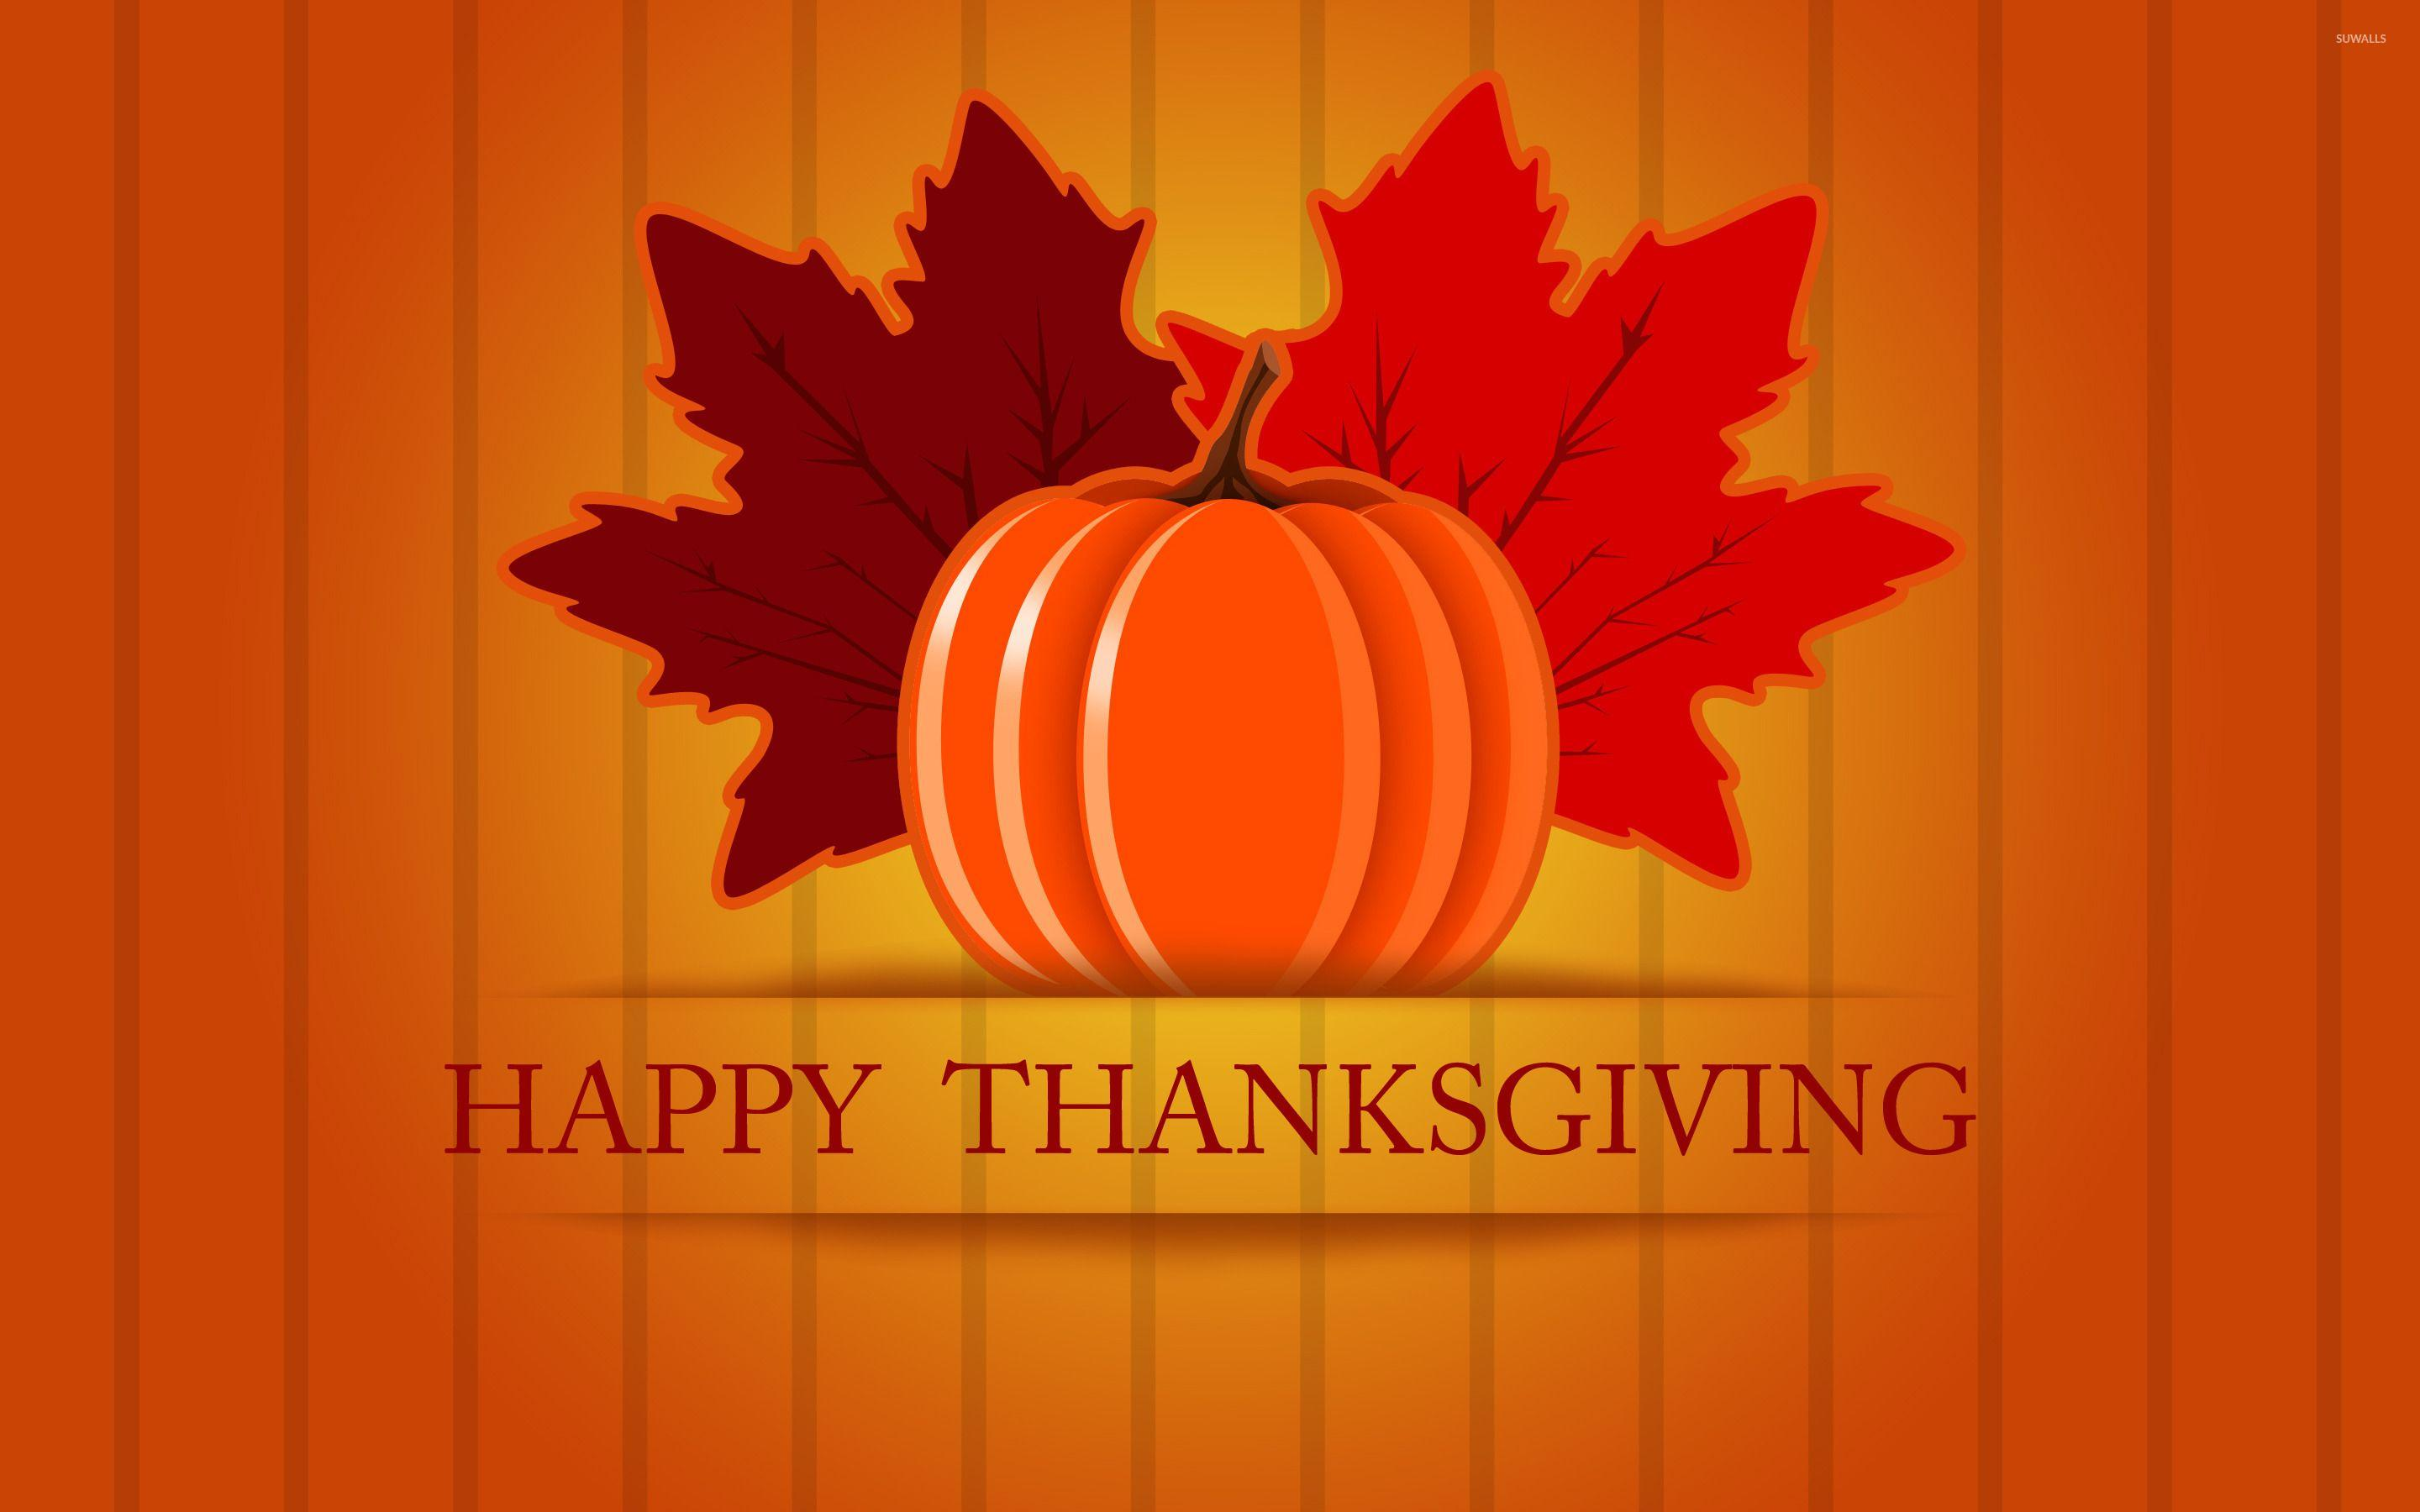 Happy Thanksgiving [2] wallpaper - Holiday wallpapers - #23967